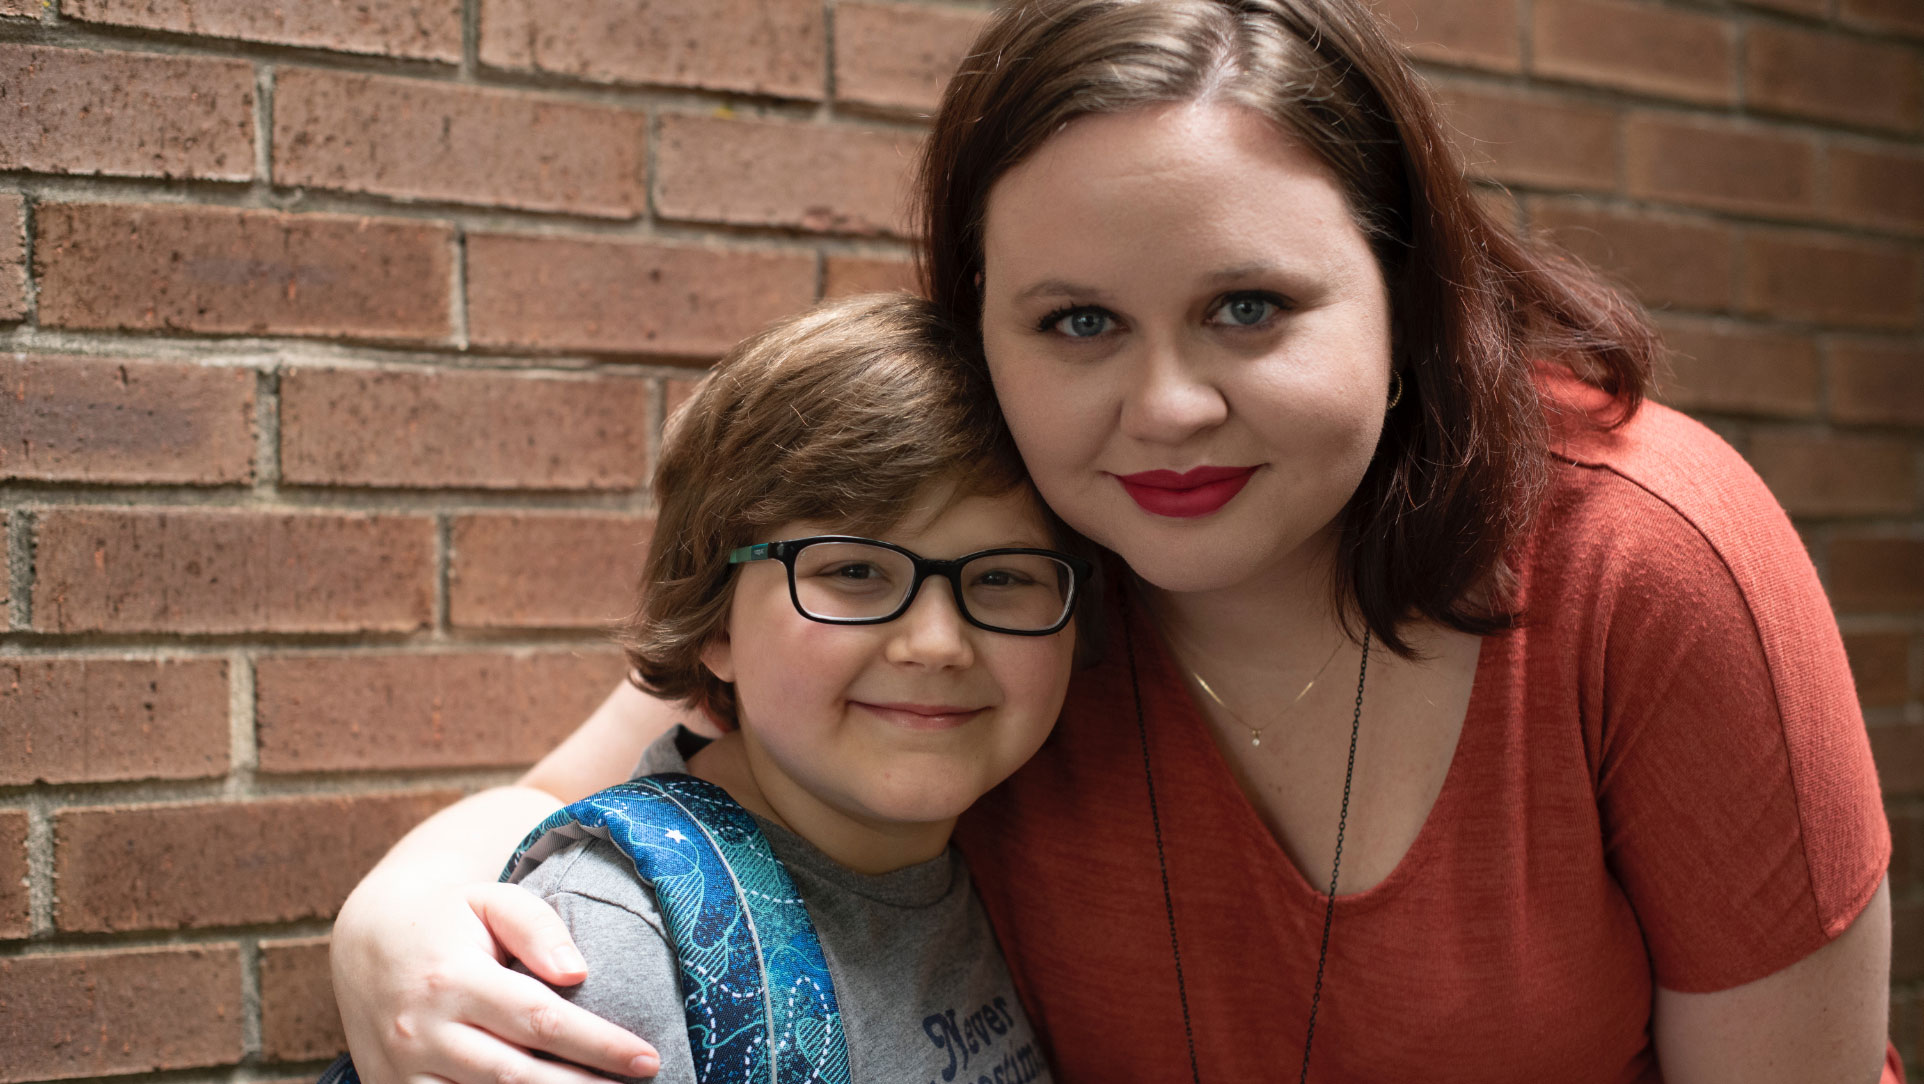 A photo of Ellie and her mom, Morgan, a young looking woman with brown hair wearing red lipstick and an orange shirt. Morgan's arm is around Ellie's shoulders. Both are smiling.